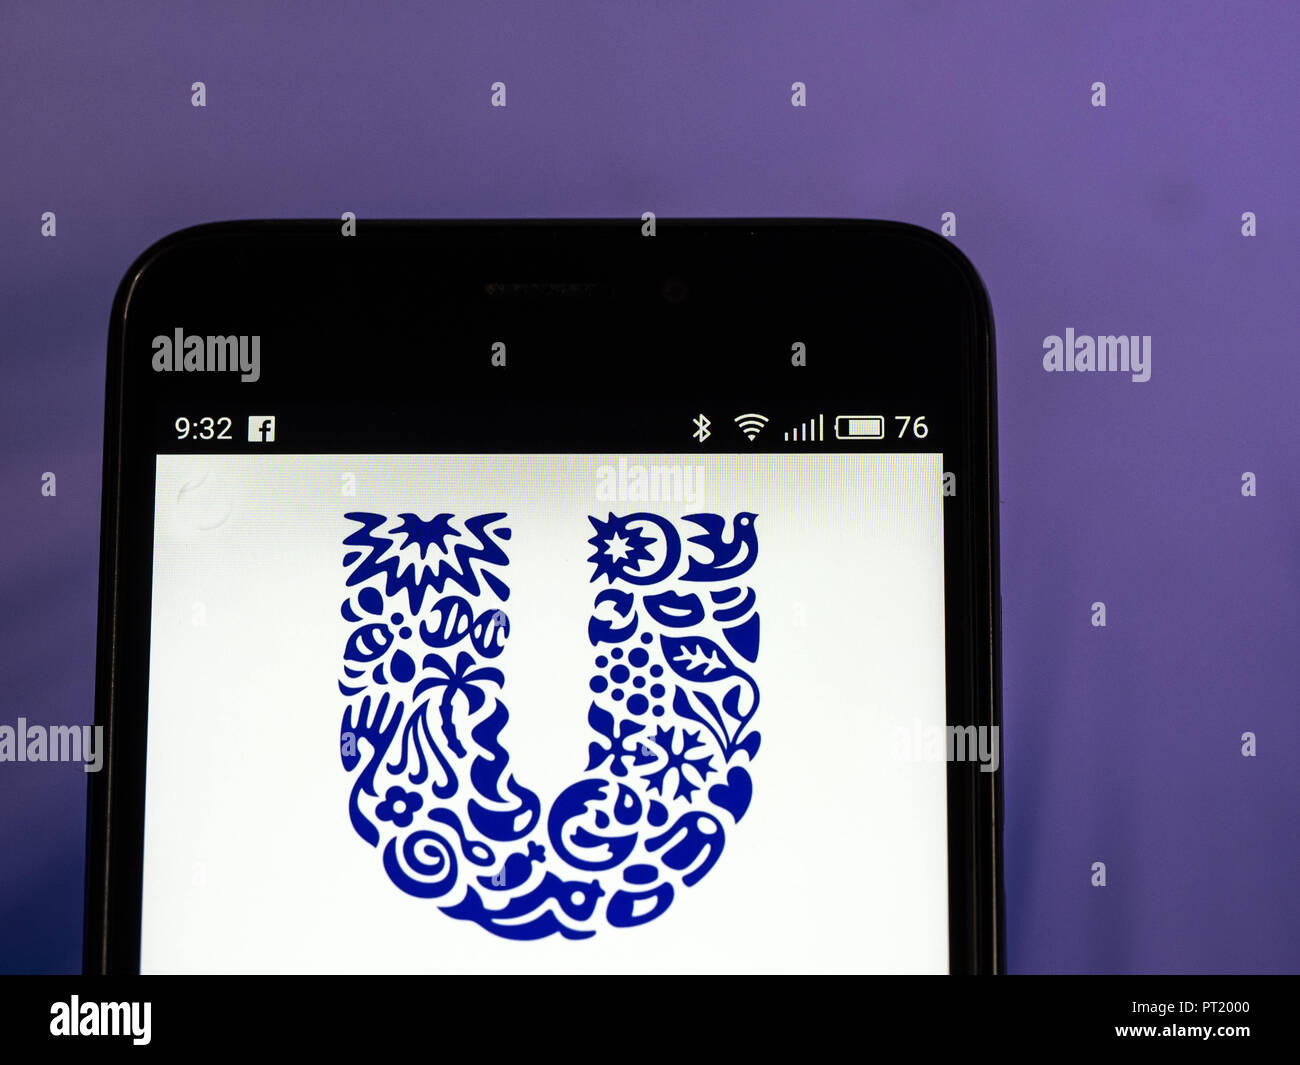 Kiev, Ukraine. 27th Sep, 2018. Unilever logo seen displayed on smart phone. Unilever is a British-Dutch transnational consumer goods company co-headquartered in London, United Kingdom and Rotterdam, Netherlands. Its products include food and beverages, cleaning agents and personal care products. Credit: Igor Golovniov/SOPA Images/ZUMA Wire/Alamy Live News - Stock Image